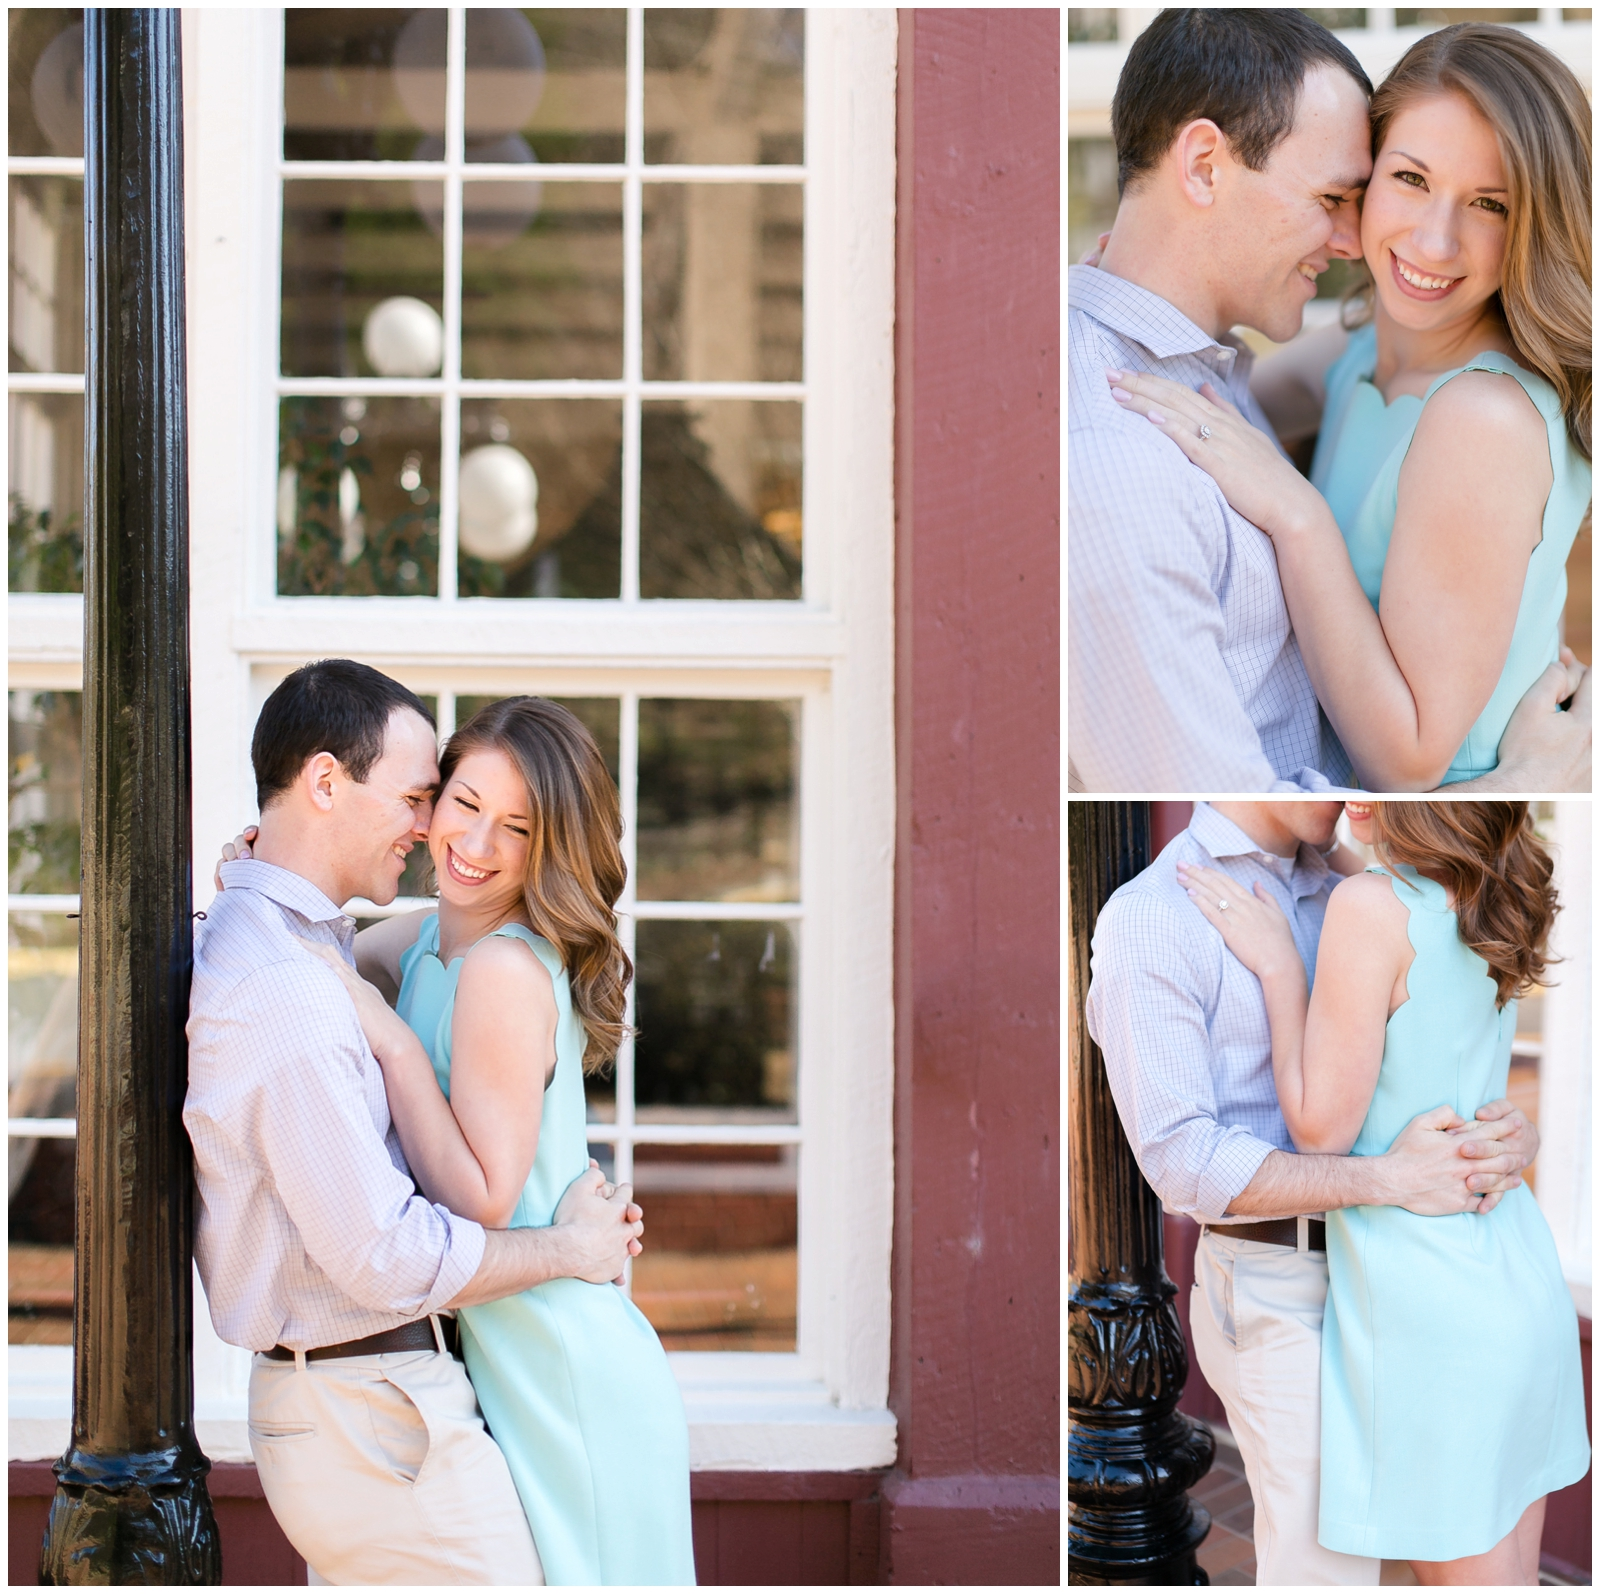 ArdentStoryHannahDavidEngaged_AtlantaEngagement_0001